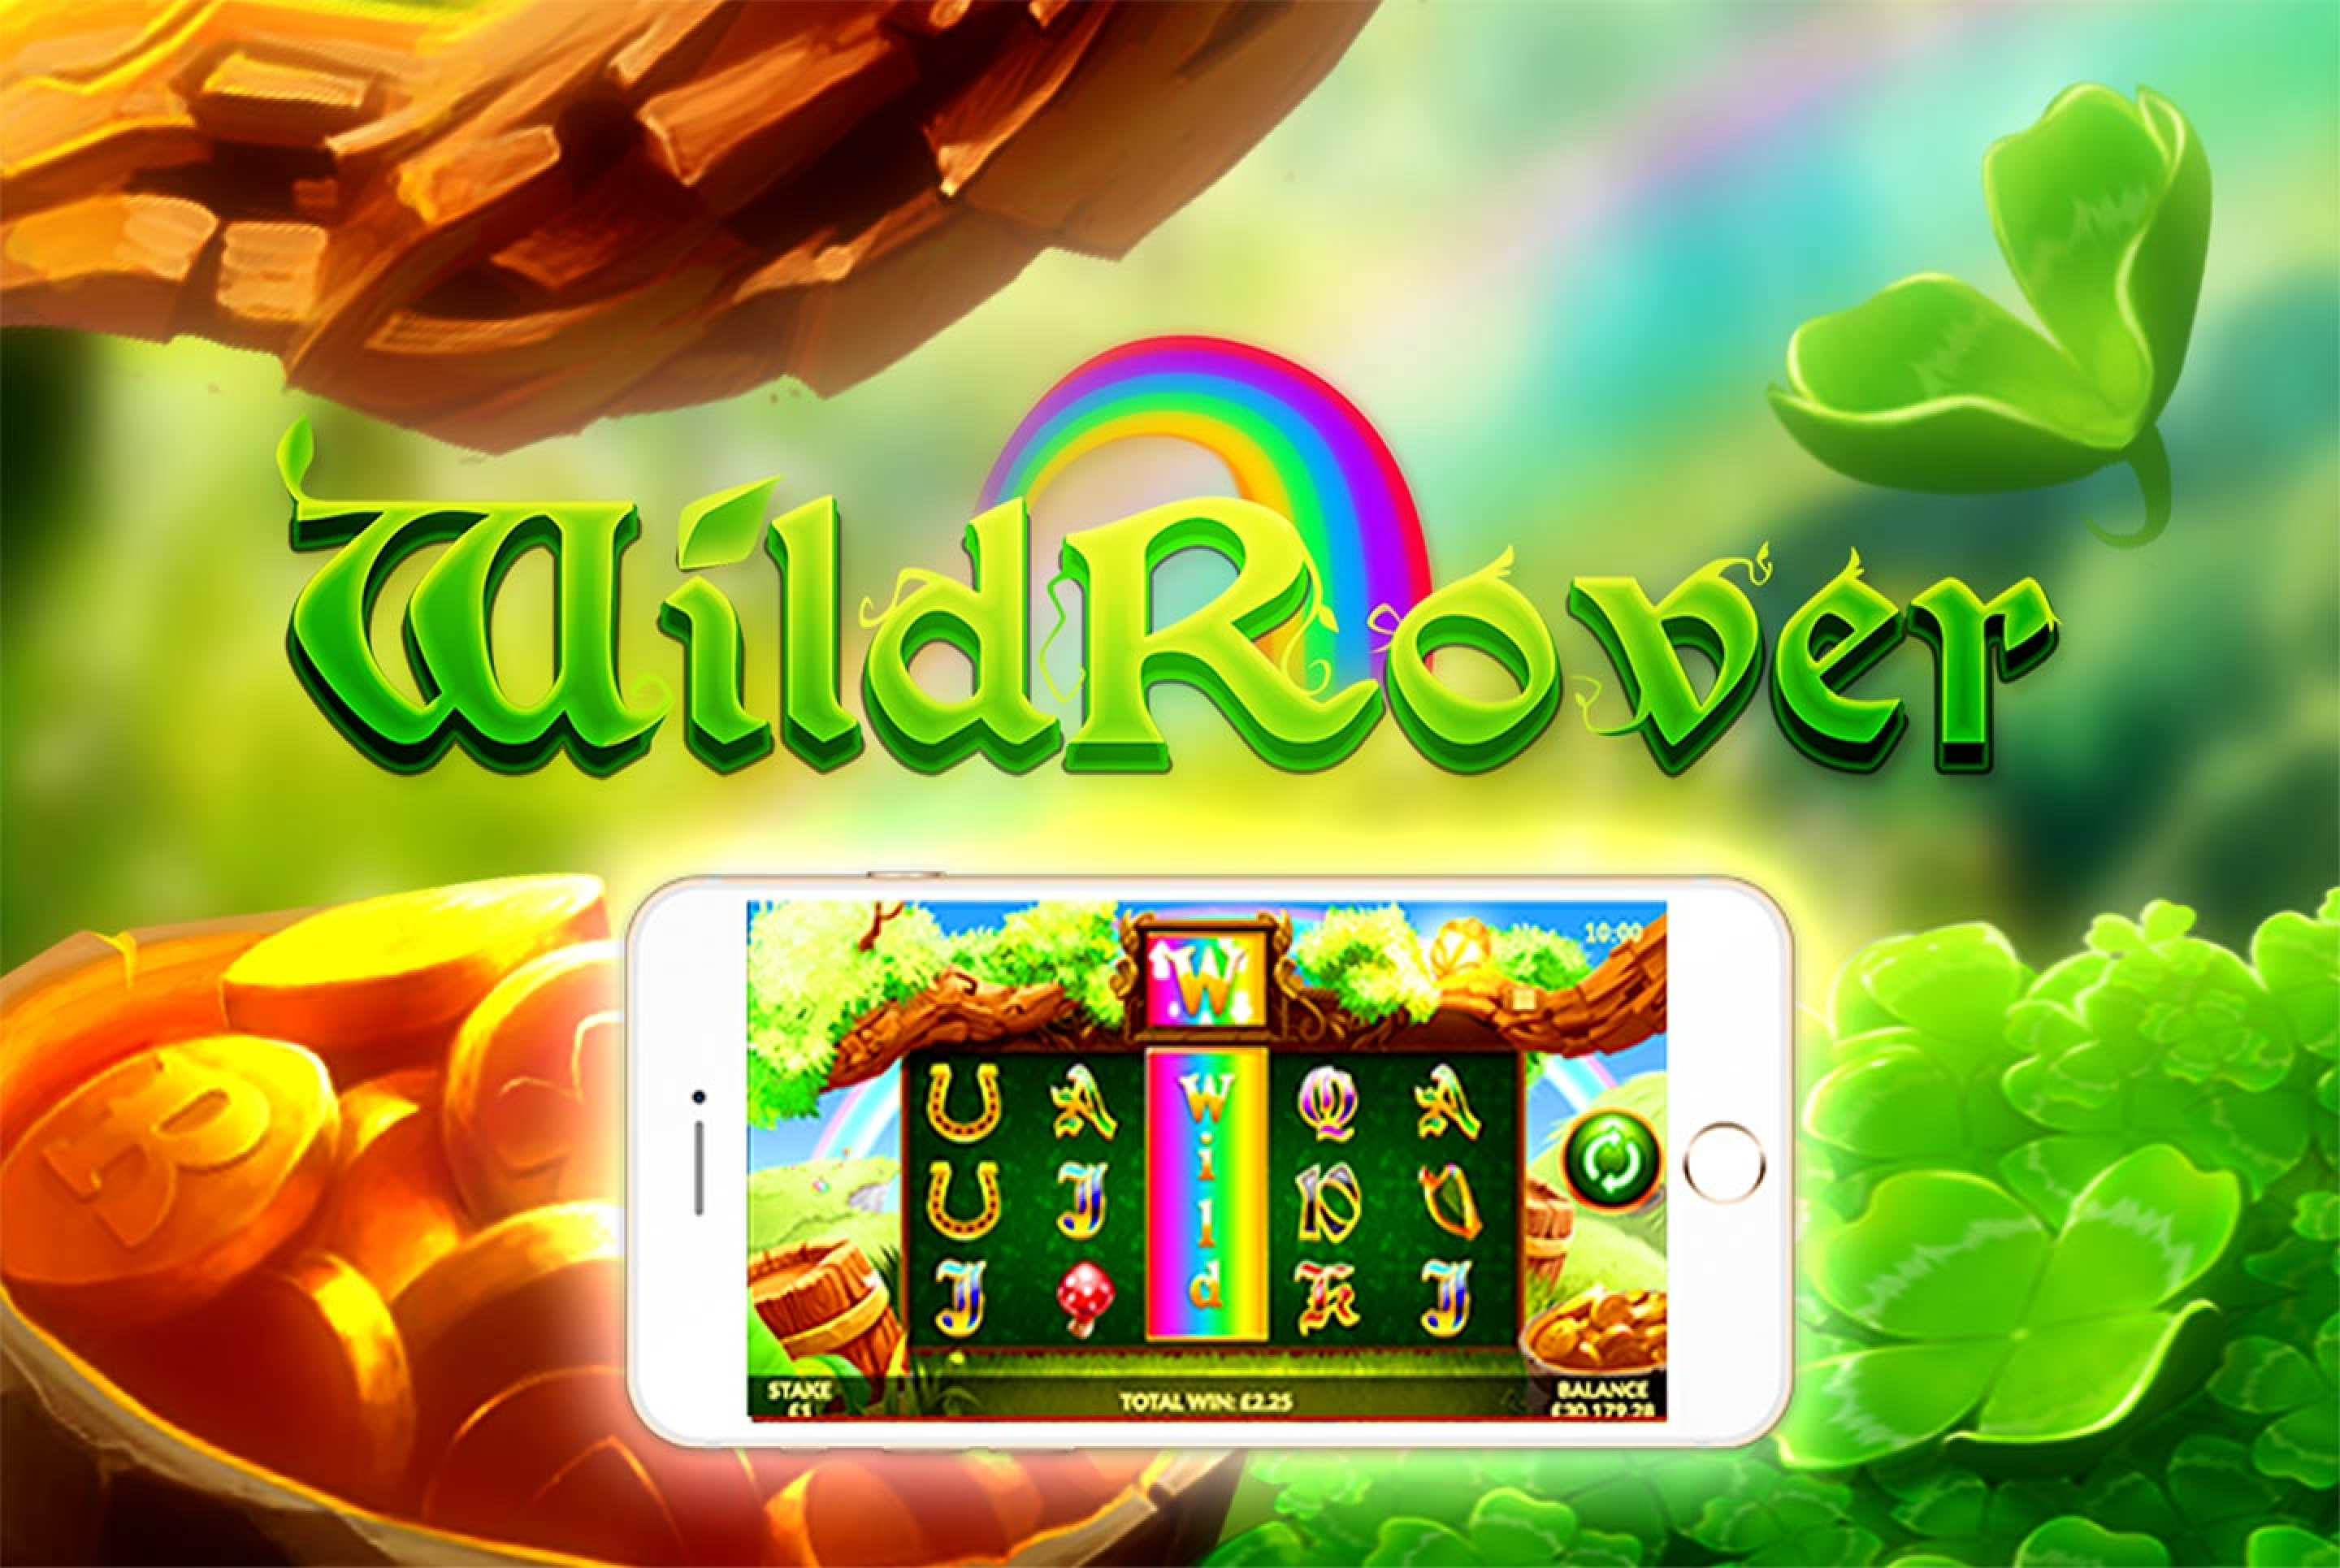 Wild Rover Online Slot Demo Game by Slingo